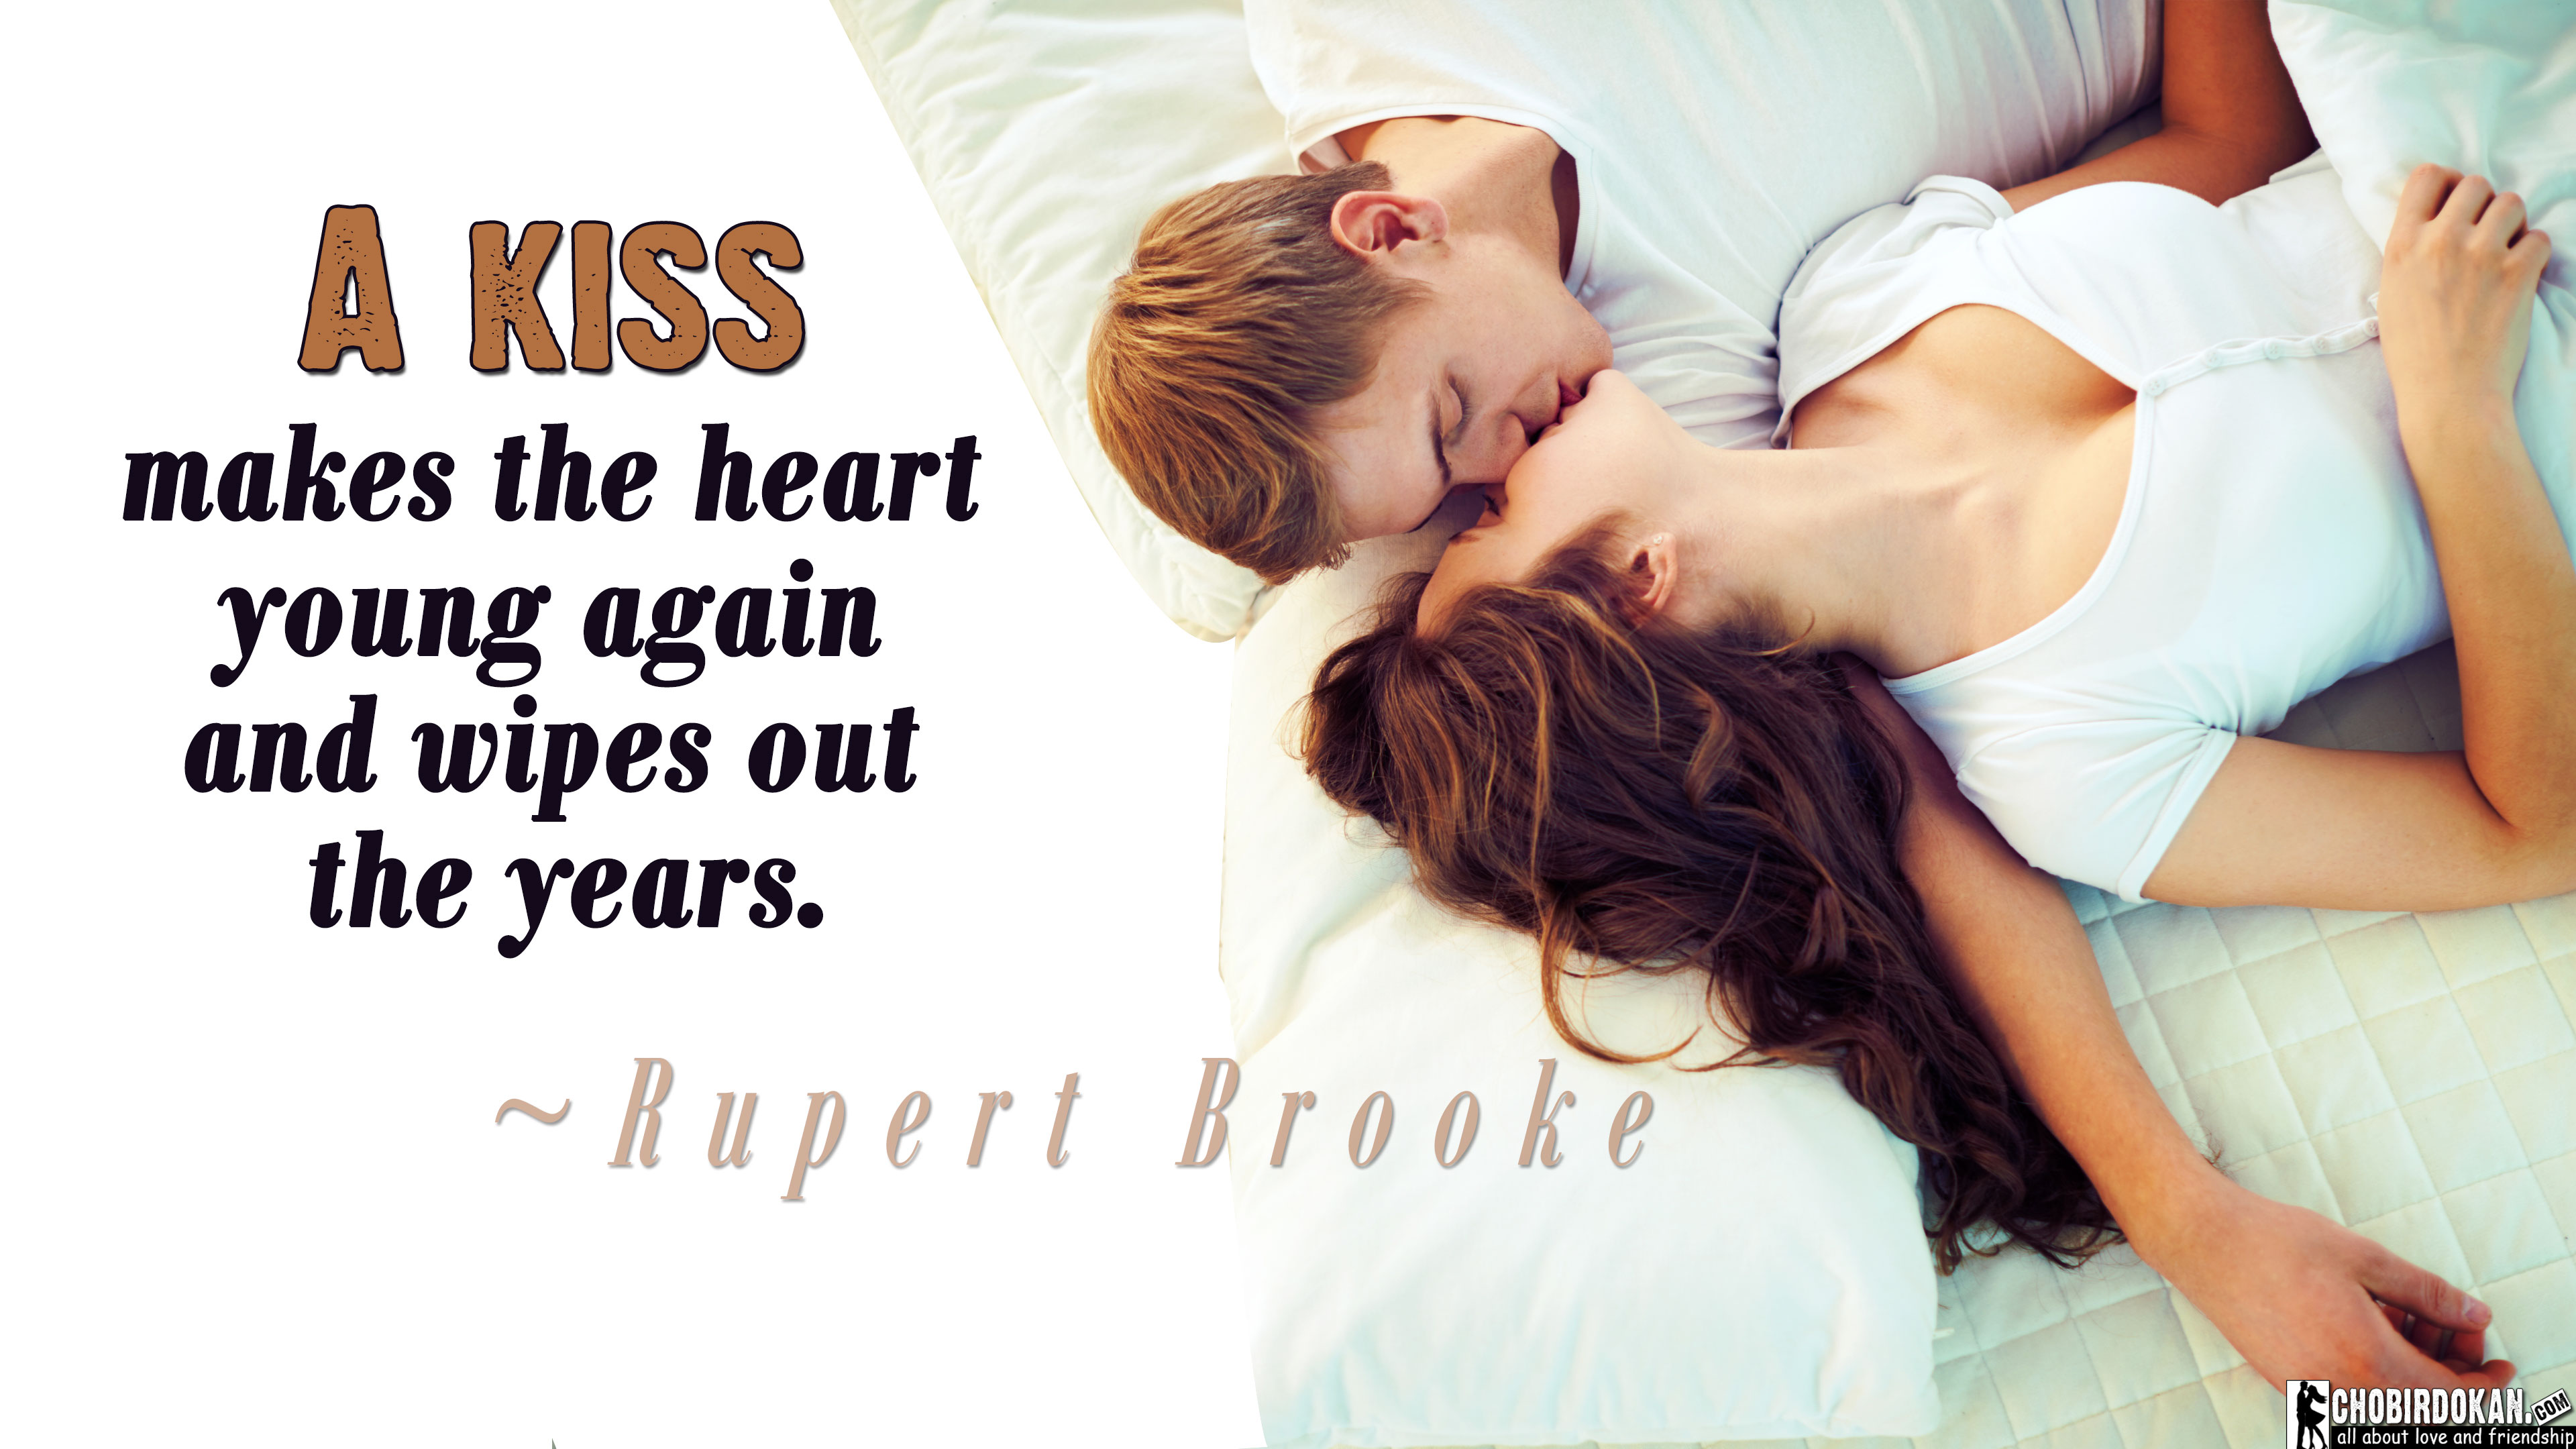 Hd Kissing Pics With Quotes